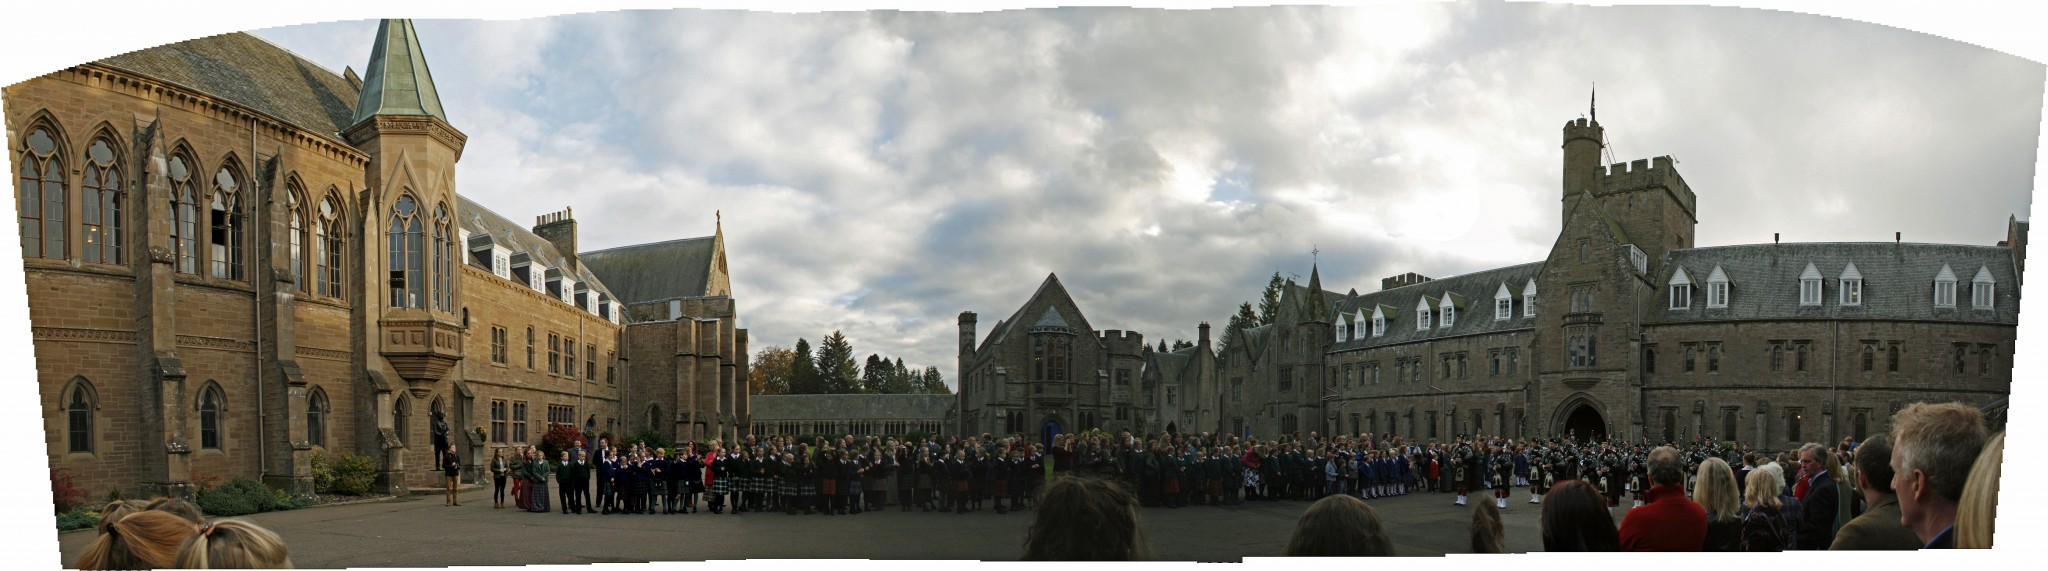 glenalmond-choral-day-oct-2014-adjusted_1.jpg